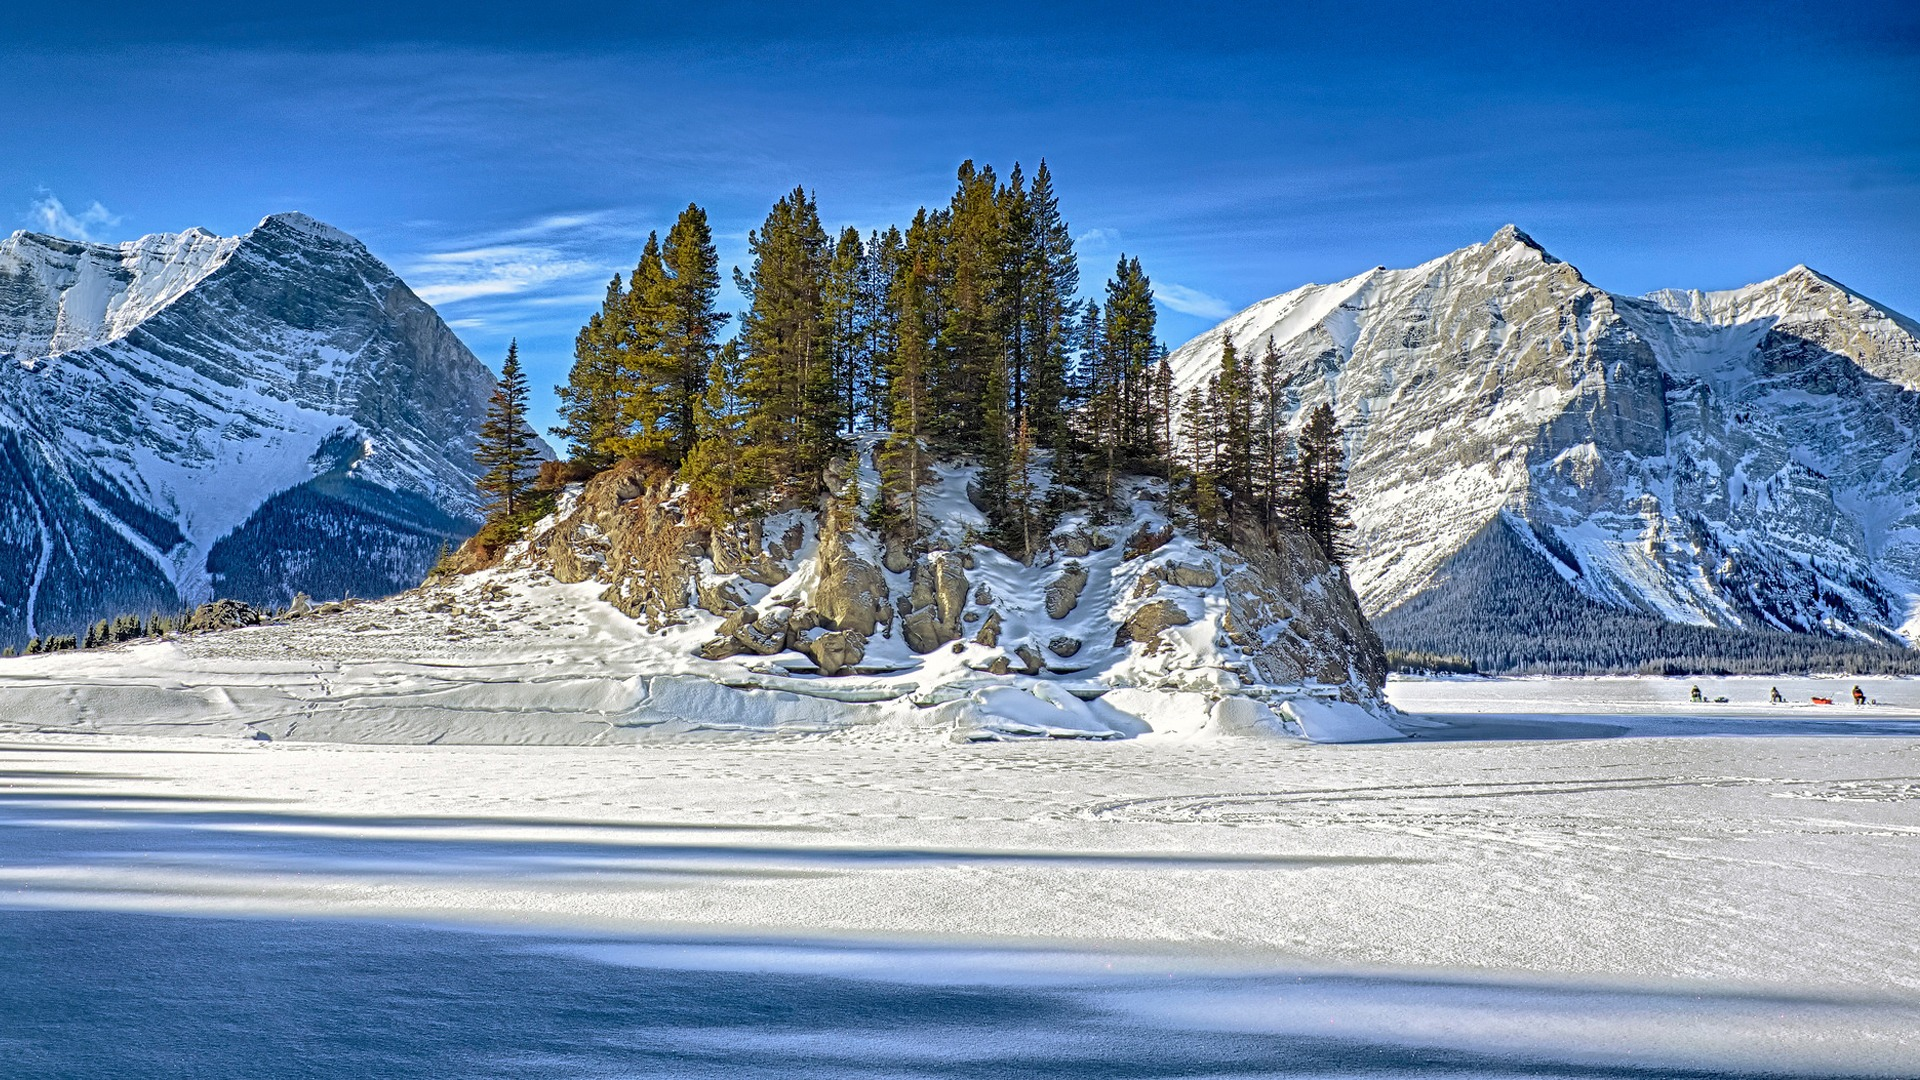 Download-ice-winter-the-sky-snow-trees-mountains-rock-lake-island-fishermen-sect-wallpaper-wpc9004483